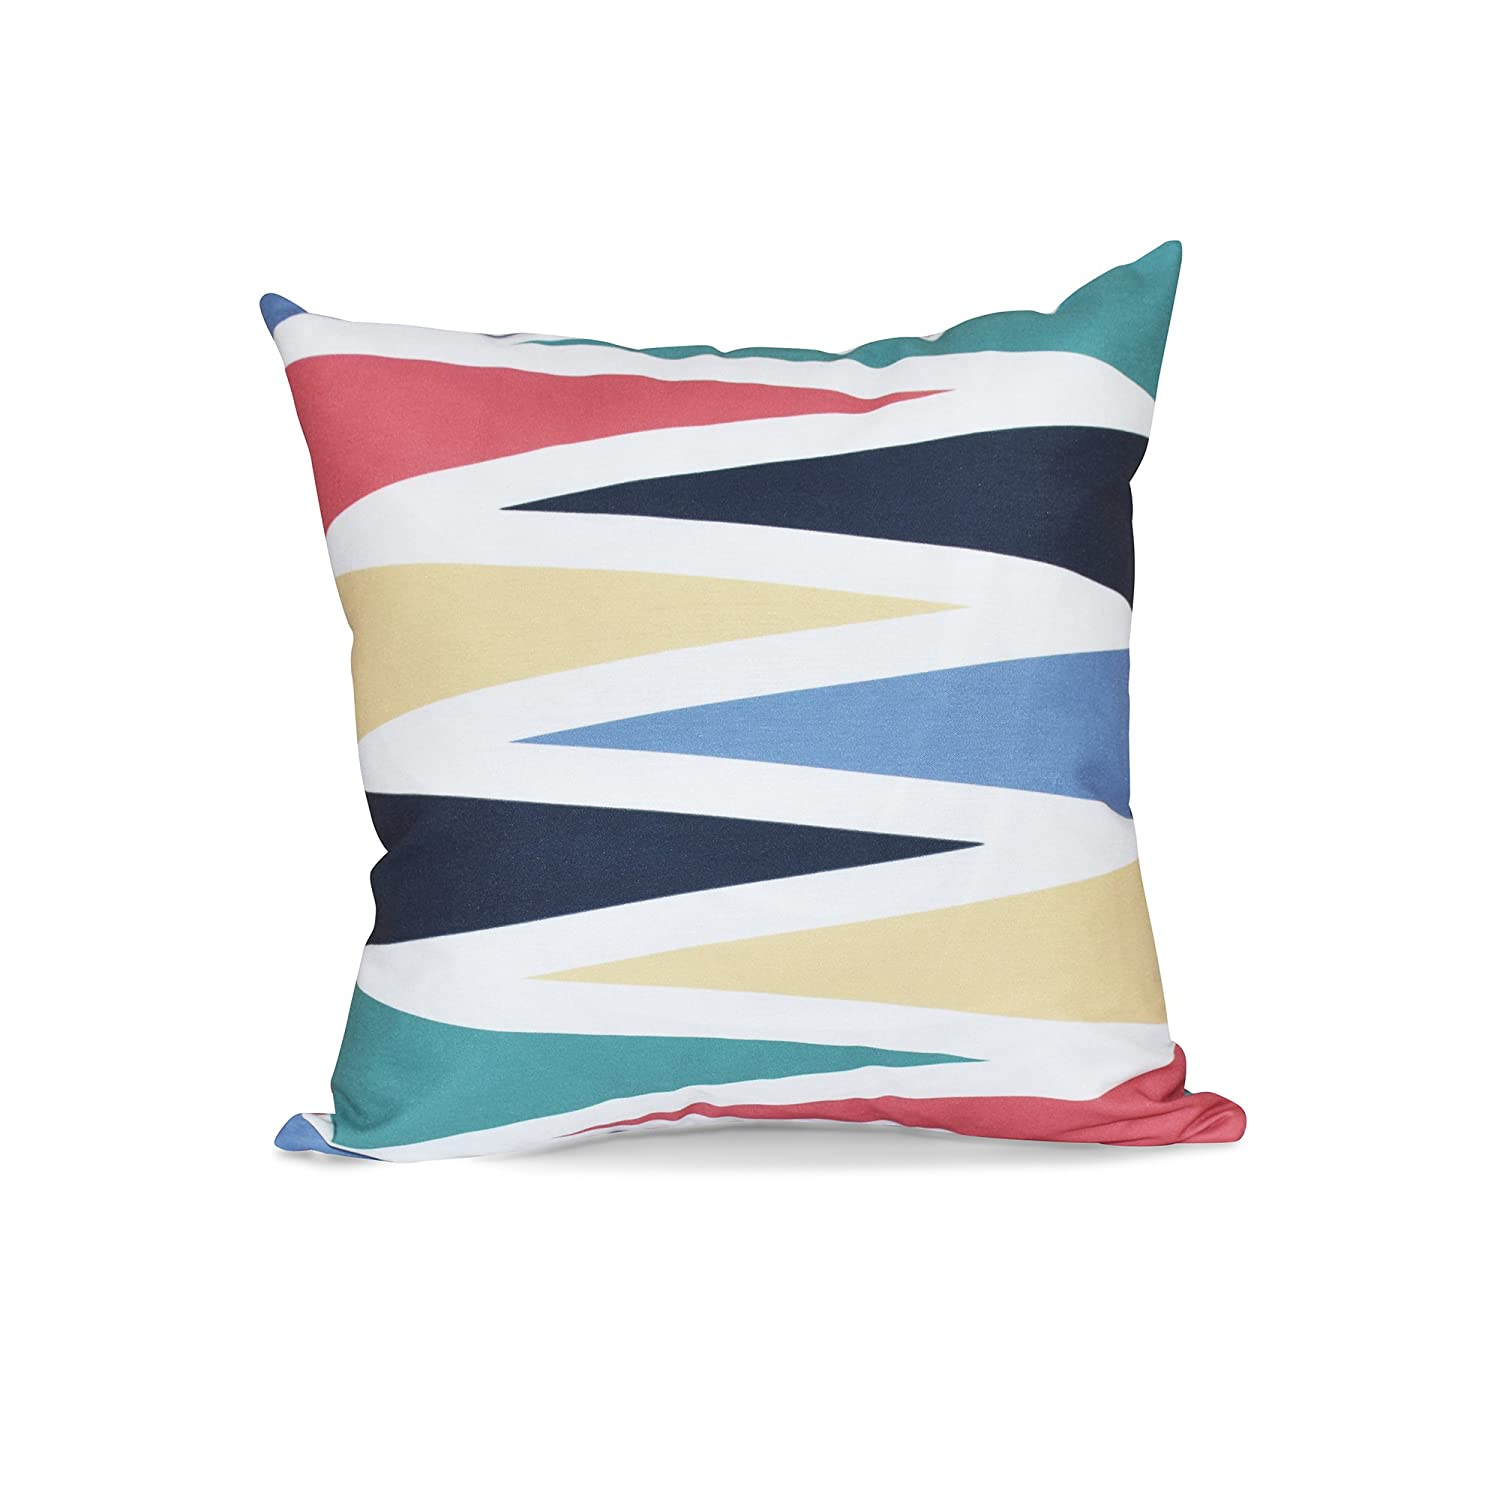 E by design Pillow